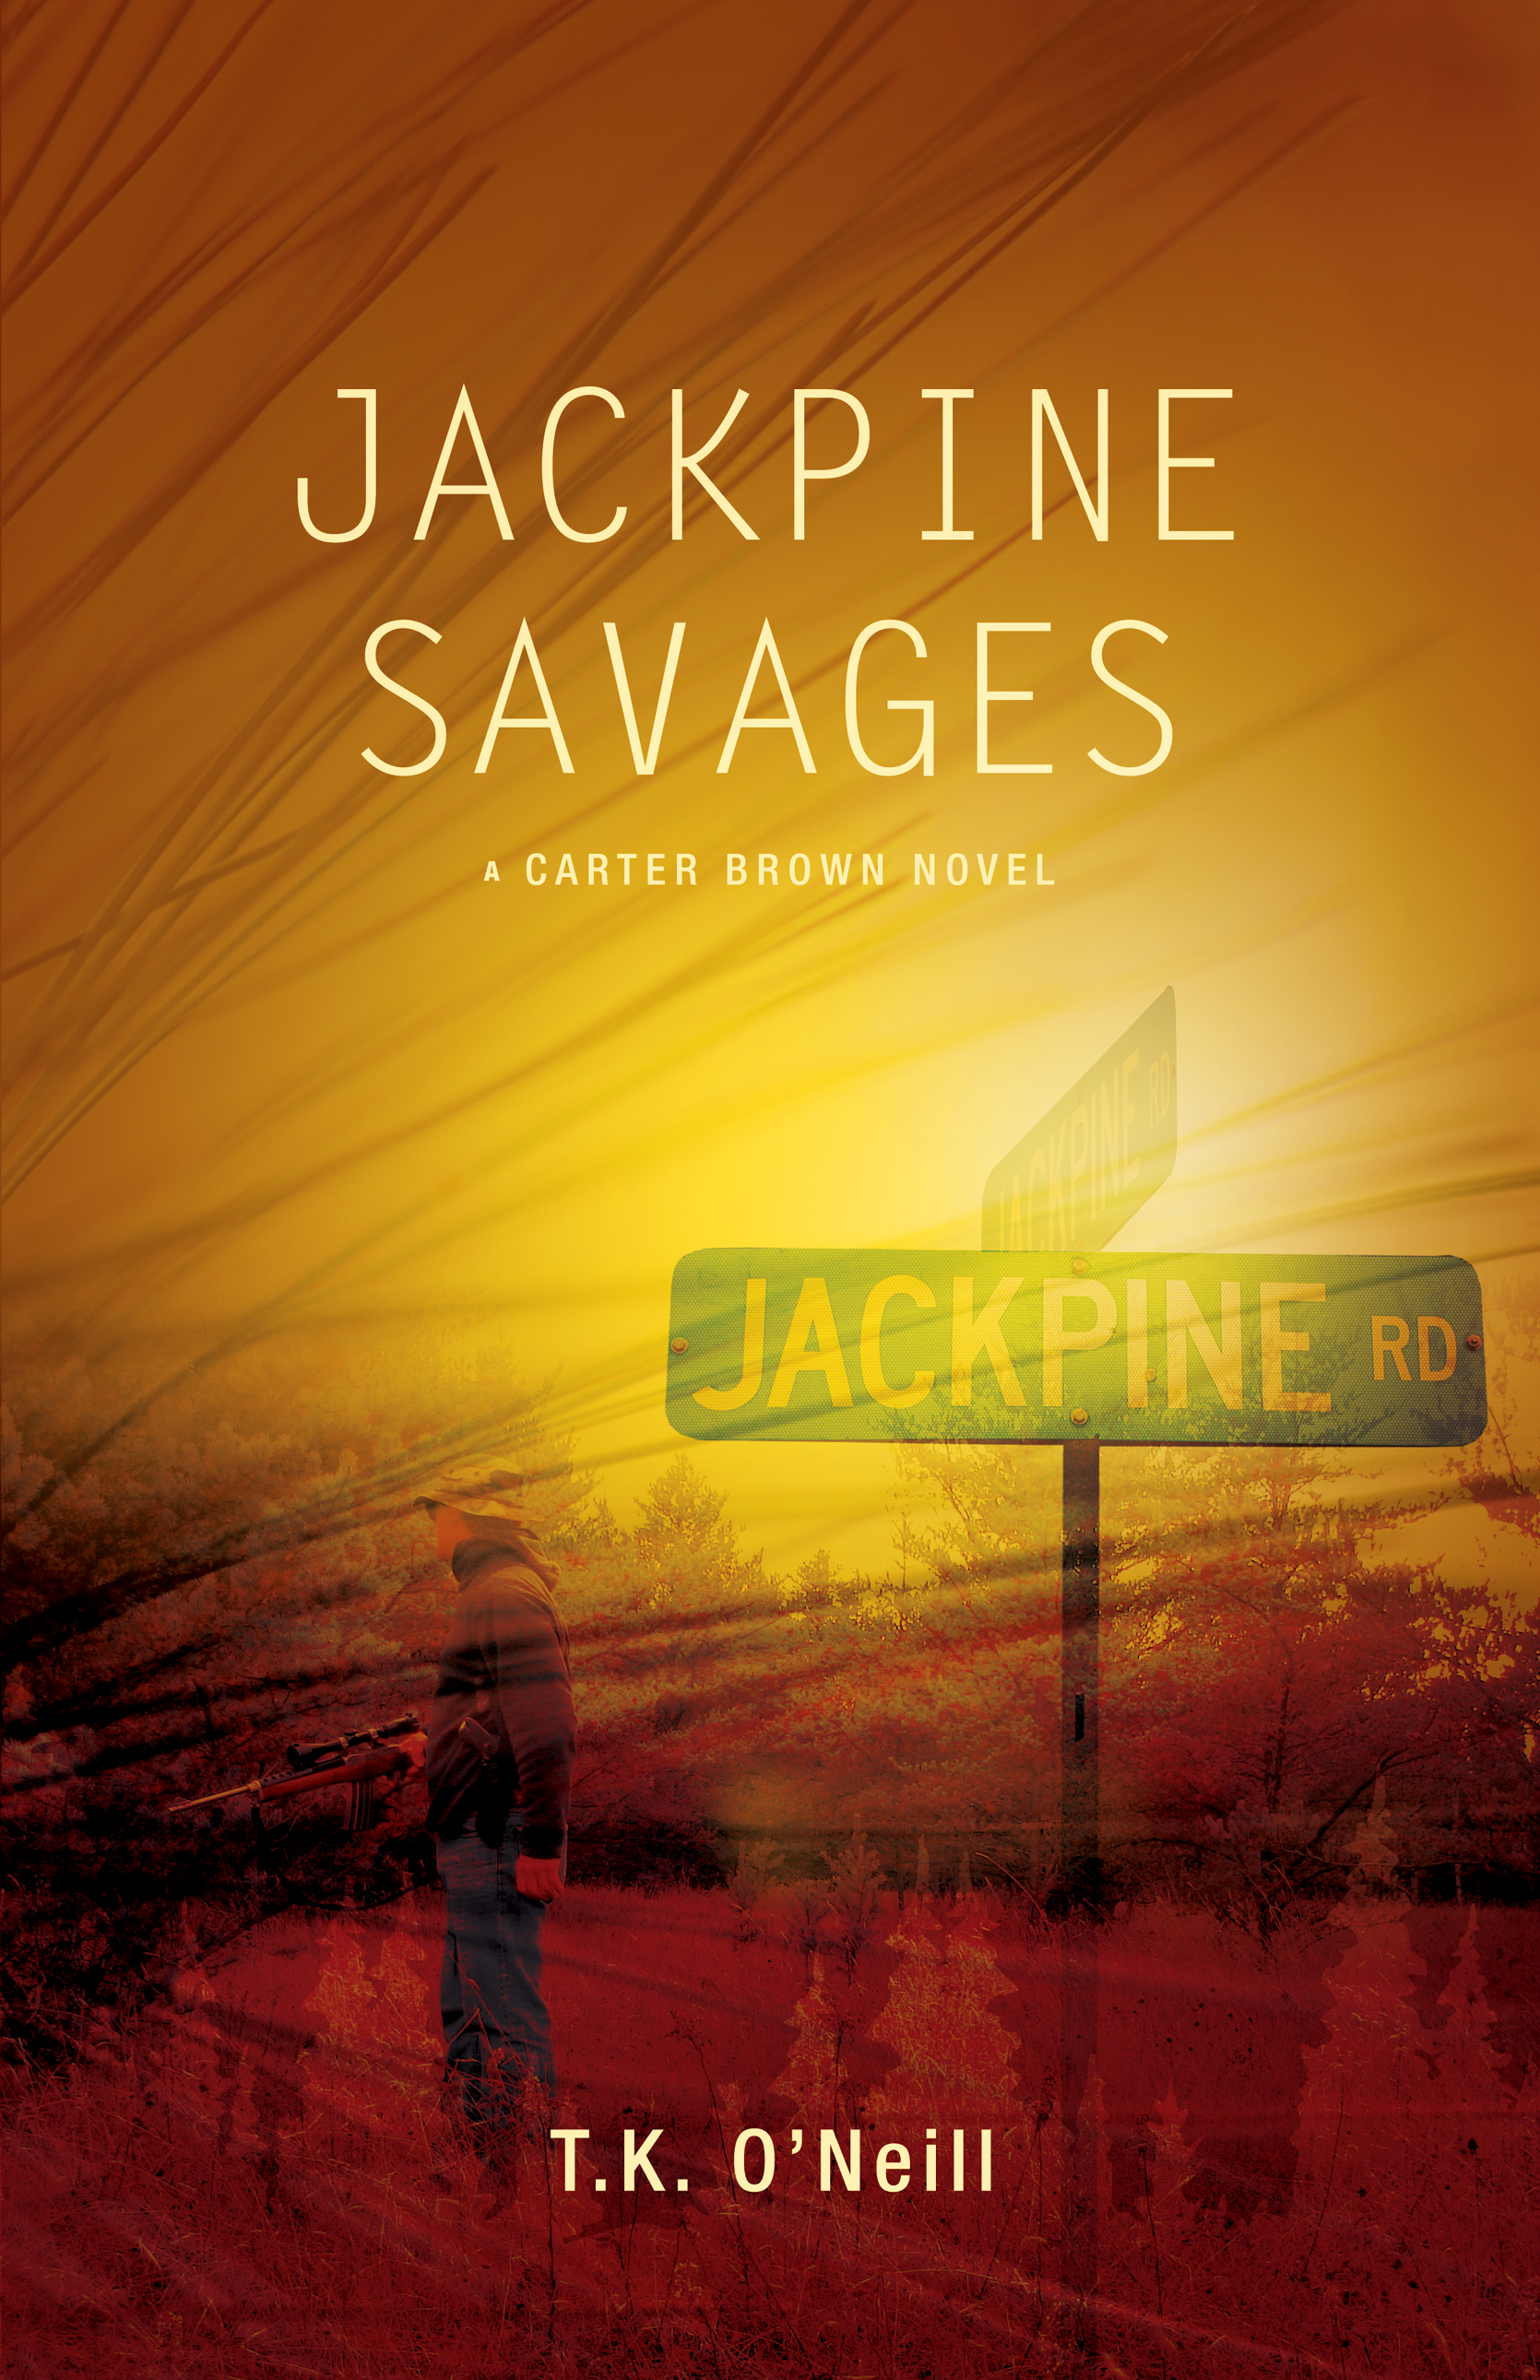 jackpine savages_cover (2)